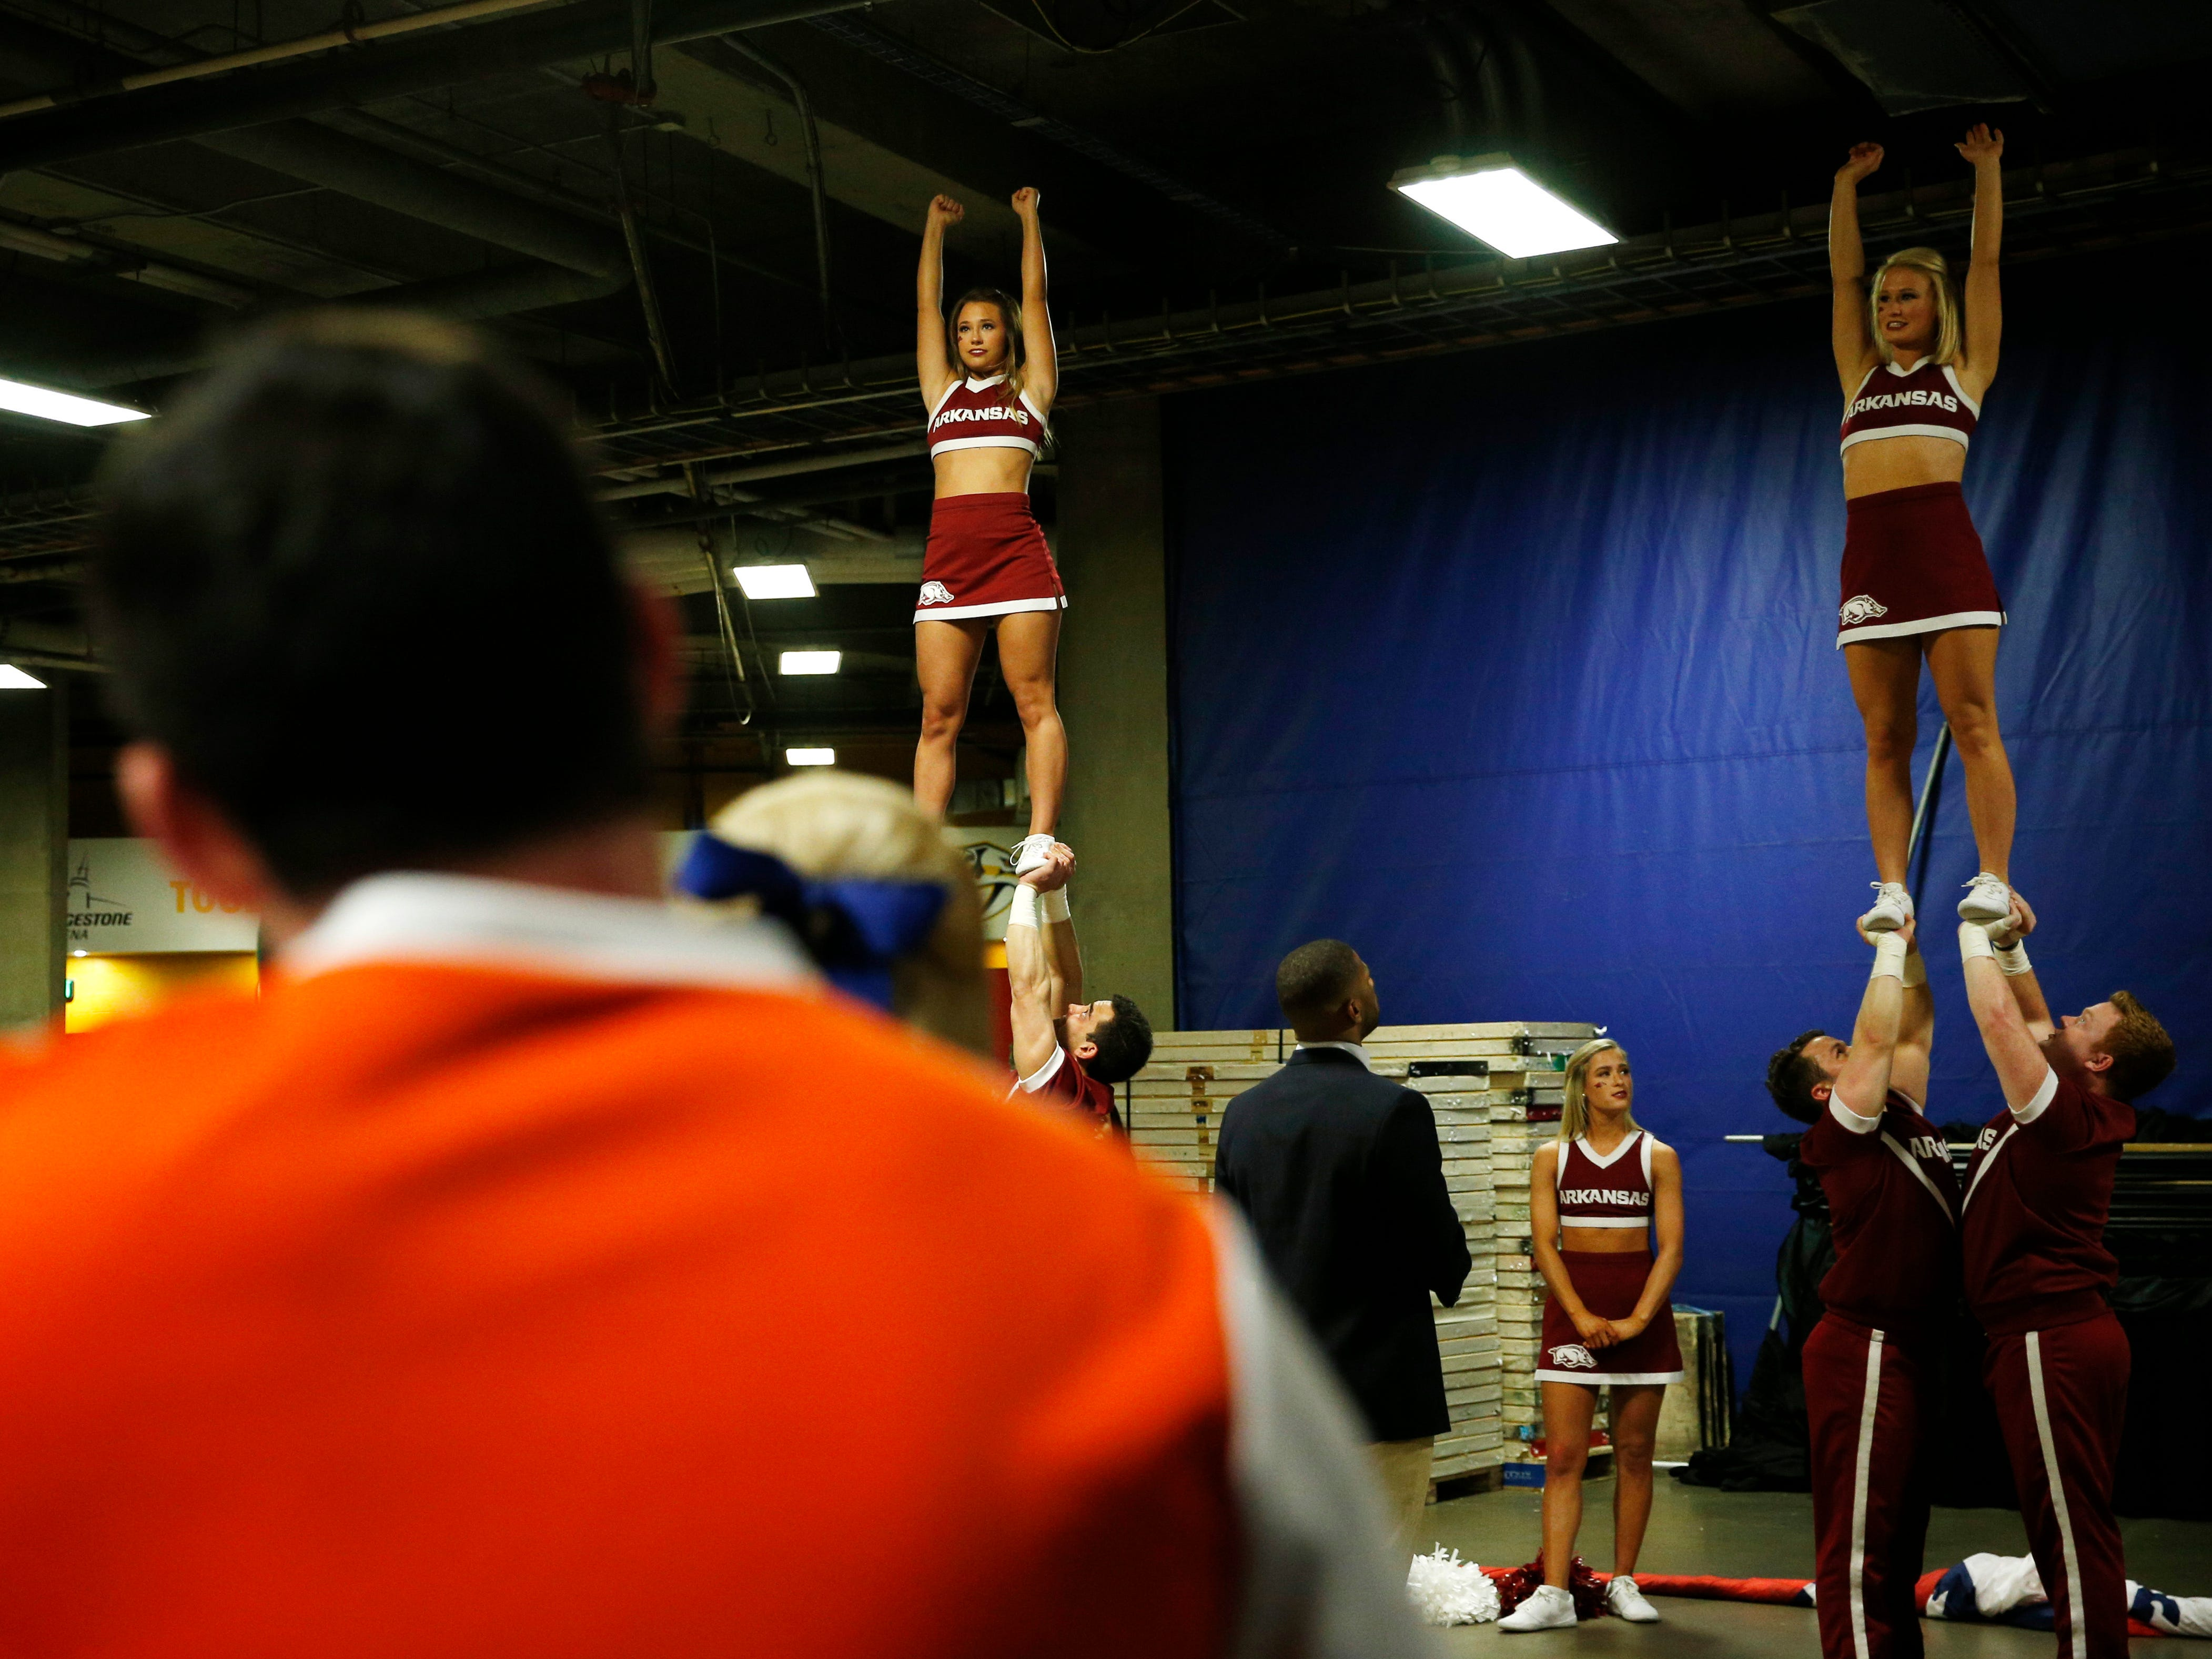 Florida cheer squad members watch Arkansas cheerleaders practice before the SEC Men's Basketball Tournament game at Bridgestone Arena in Nashville, Tenn., Thursday, March 14, 2019.